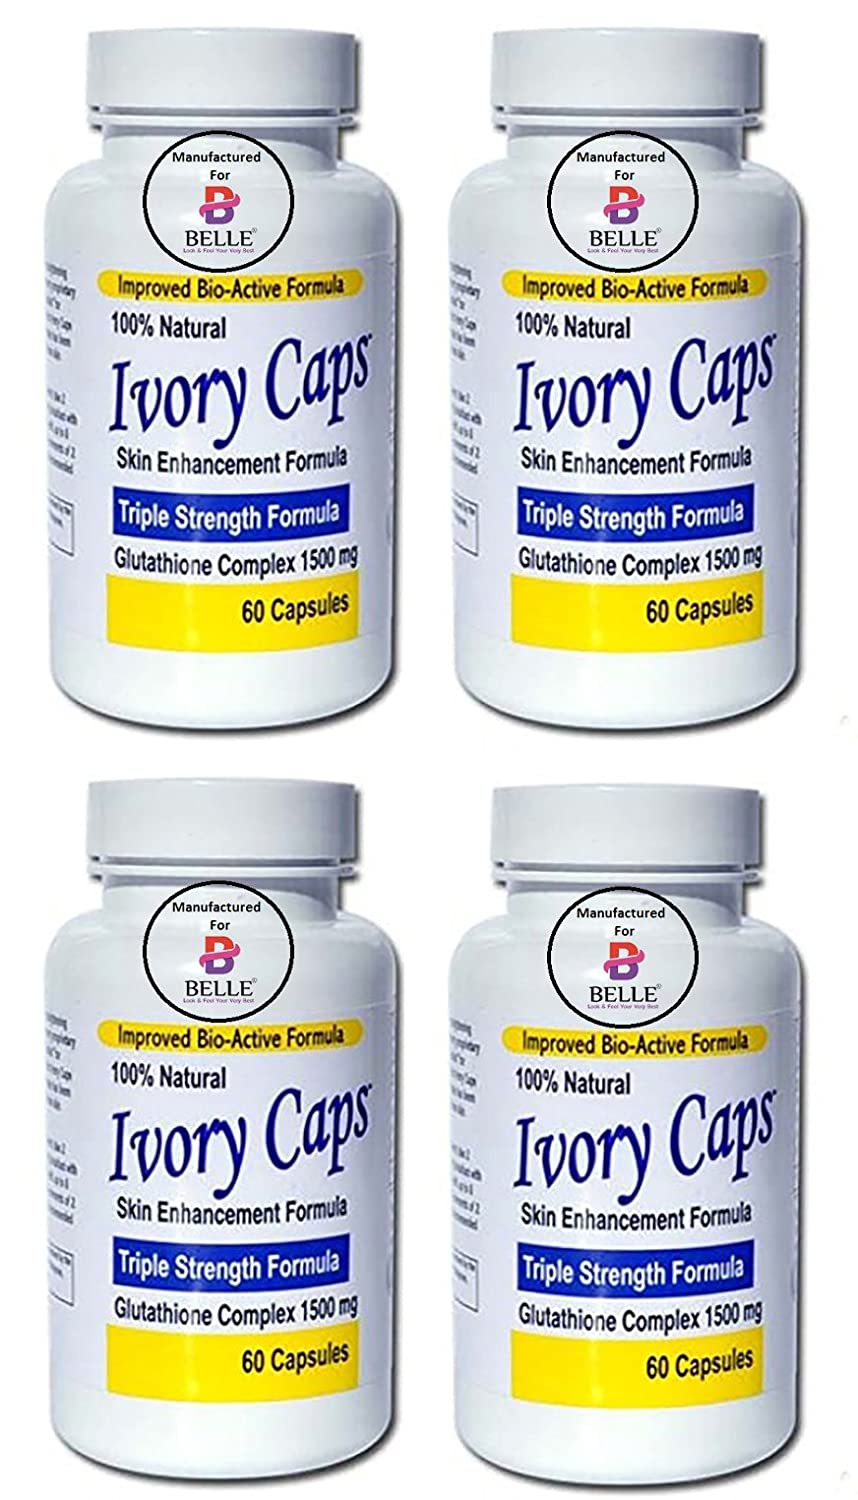 Ivory Caps Skin Whitening Lightening Max Glutathione Complex Skin Enhancement Brightening Capsules Pills Manufactured For Belle - 4 Bottle Ivory Caps By Belle